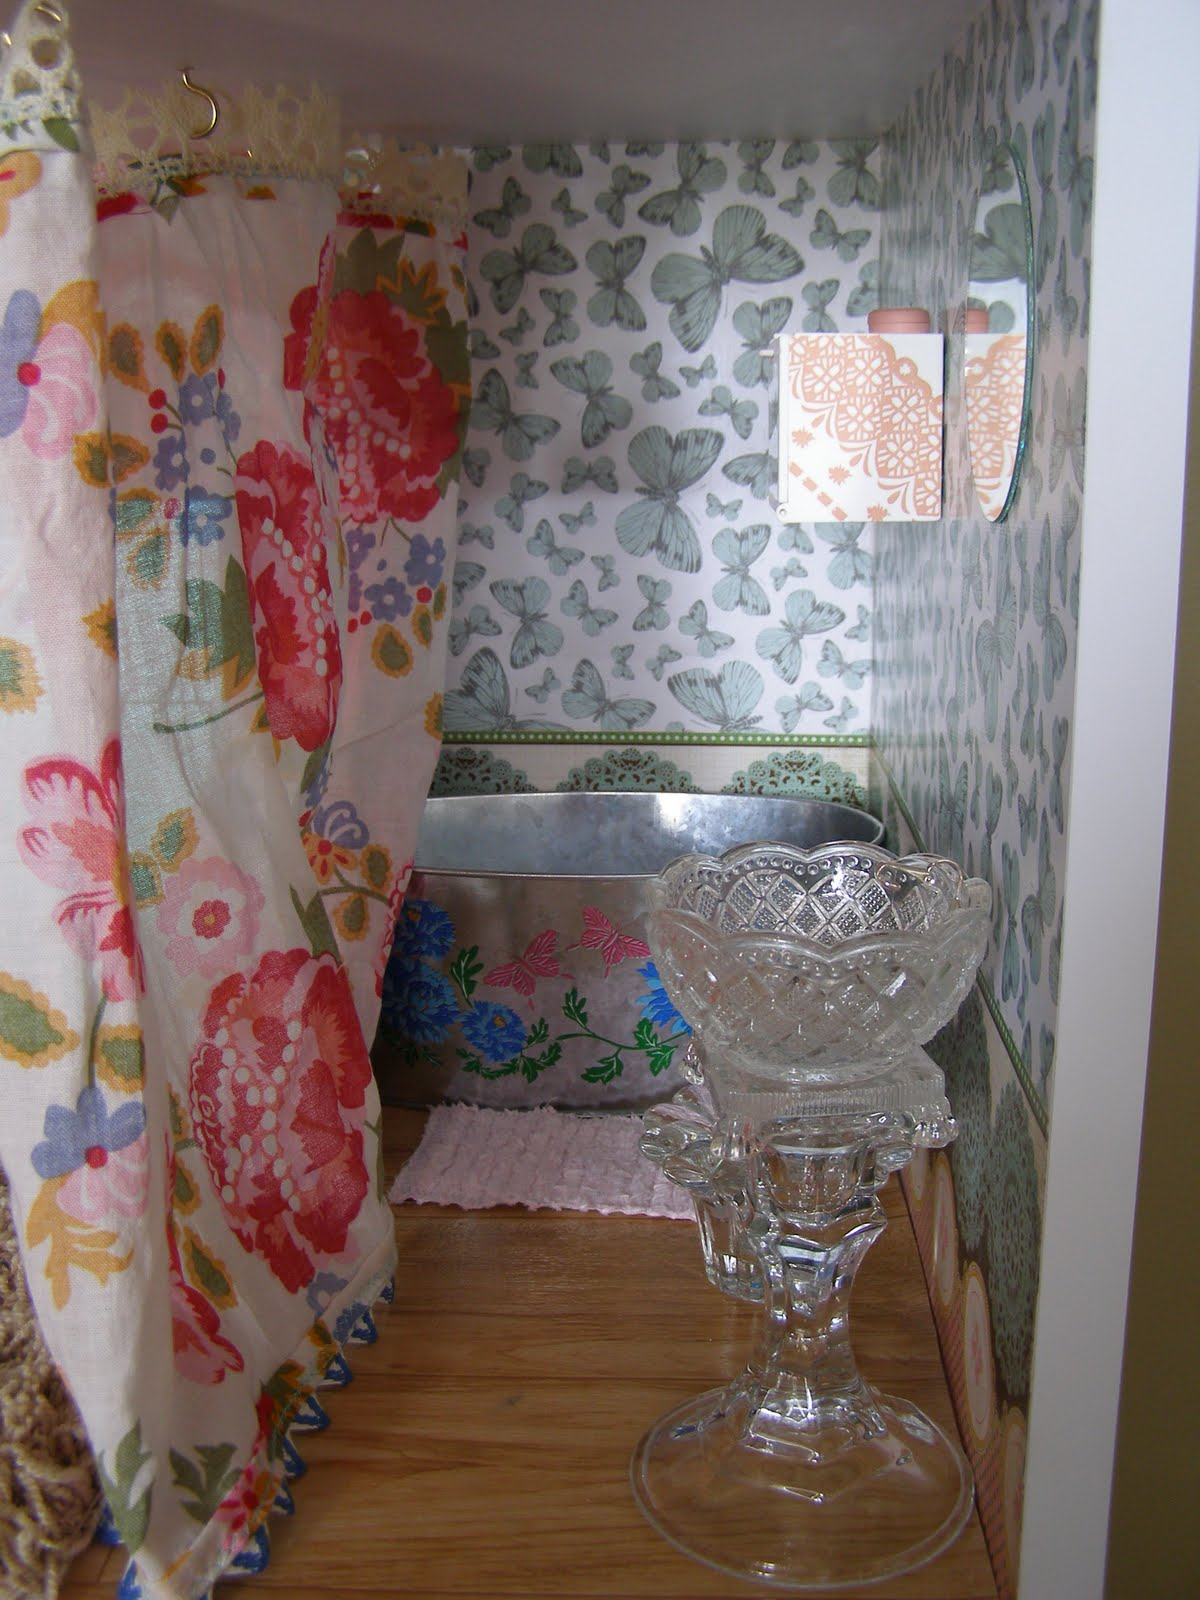 Scrapbook paper dollhouse wallpaper - I Then Glued A Clip Earring Post To The Sink For A Faucet And Used Regular Metal Earrings Backs On Each Side Of The Faucet For Faucet Handles